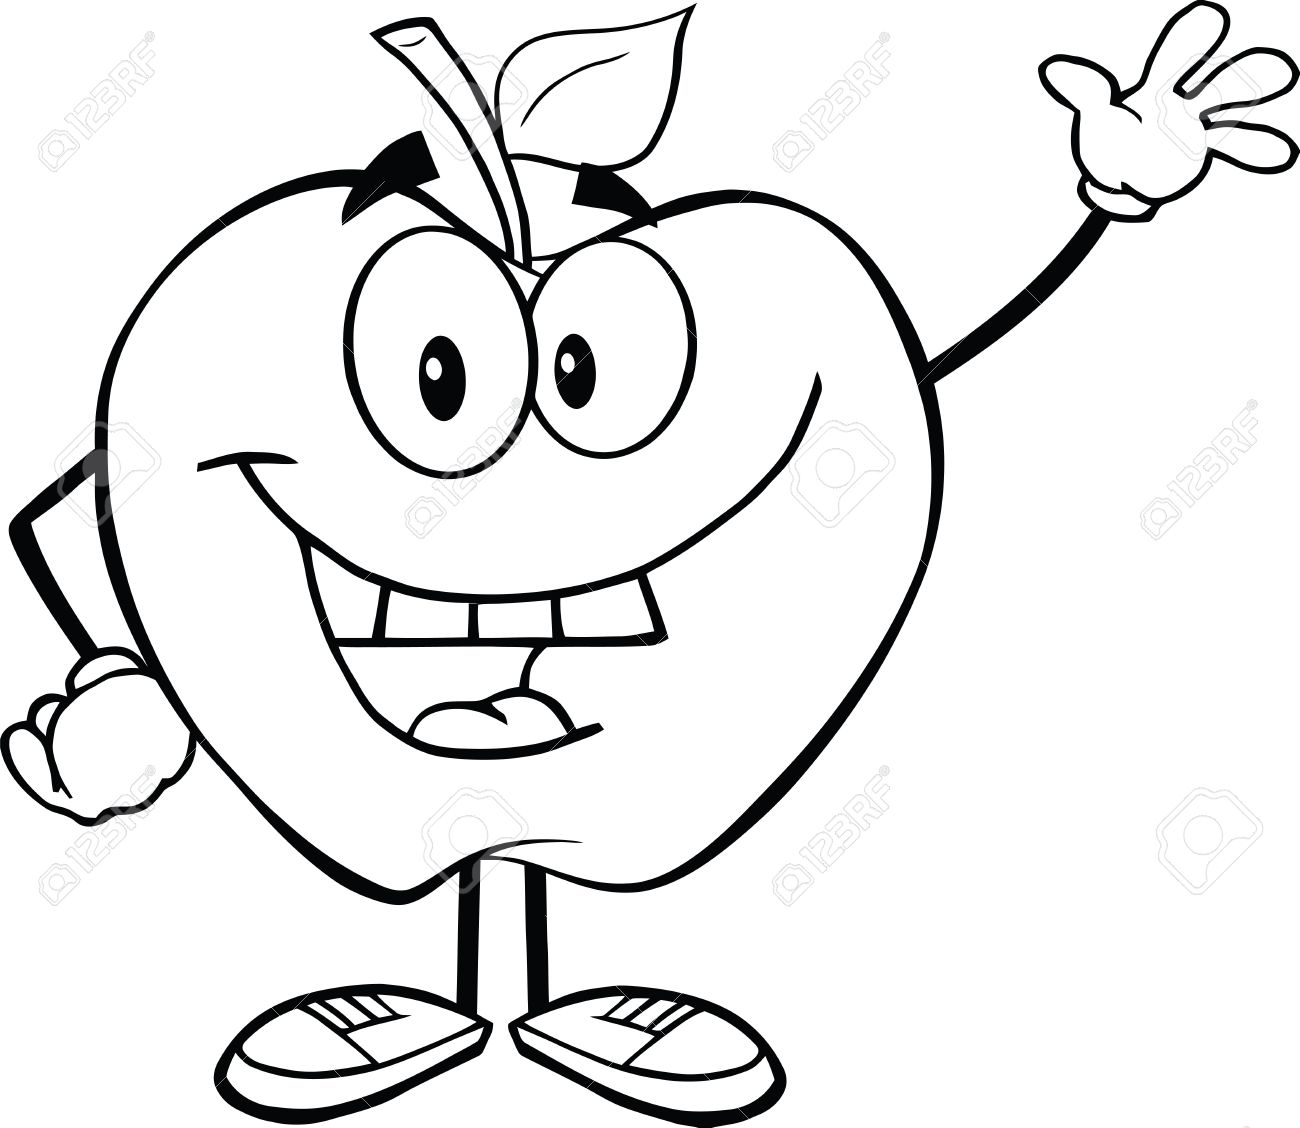 Apple Cartoon Clipart Black And White.